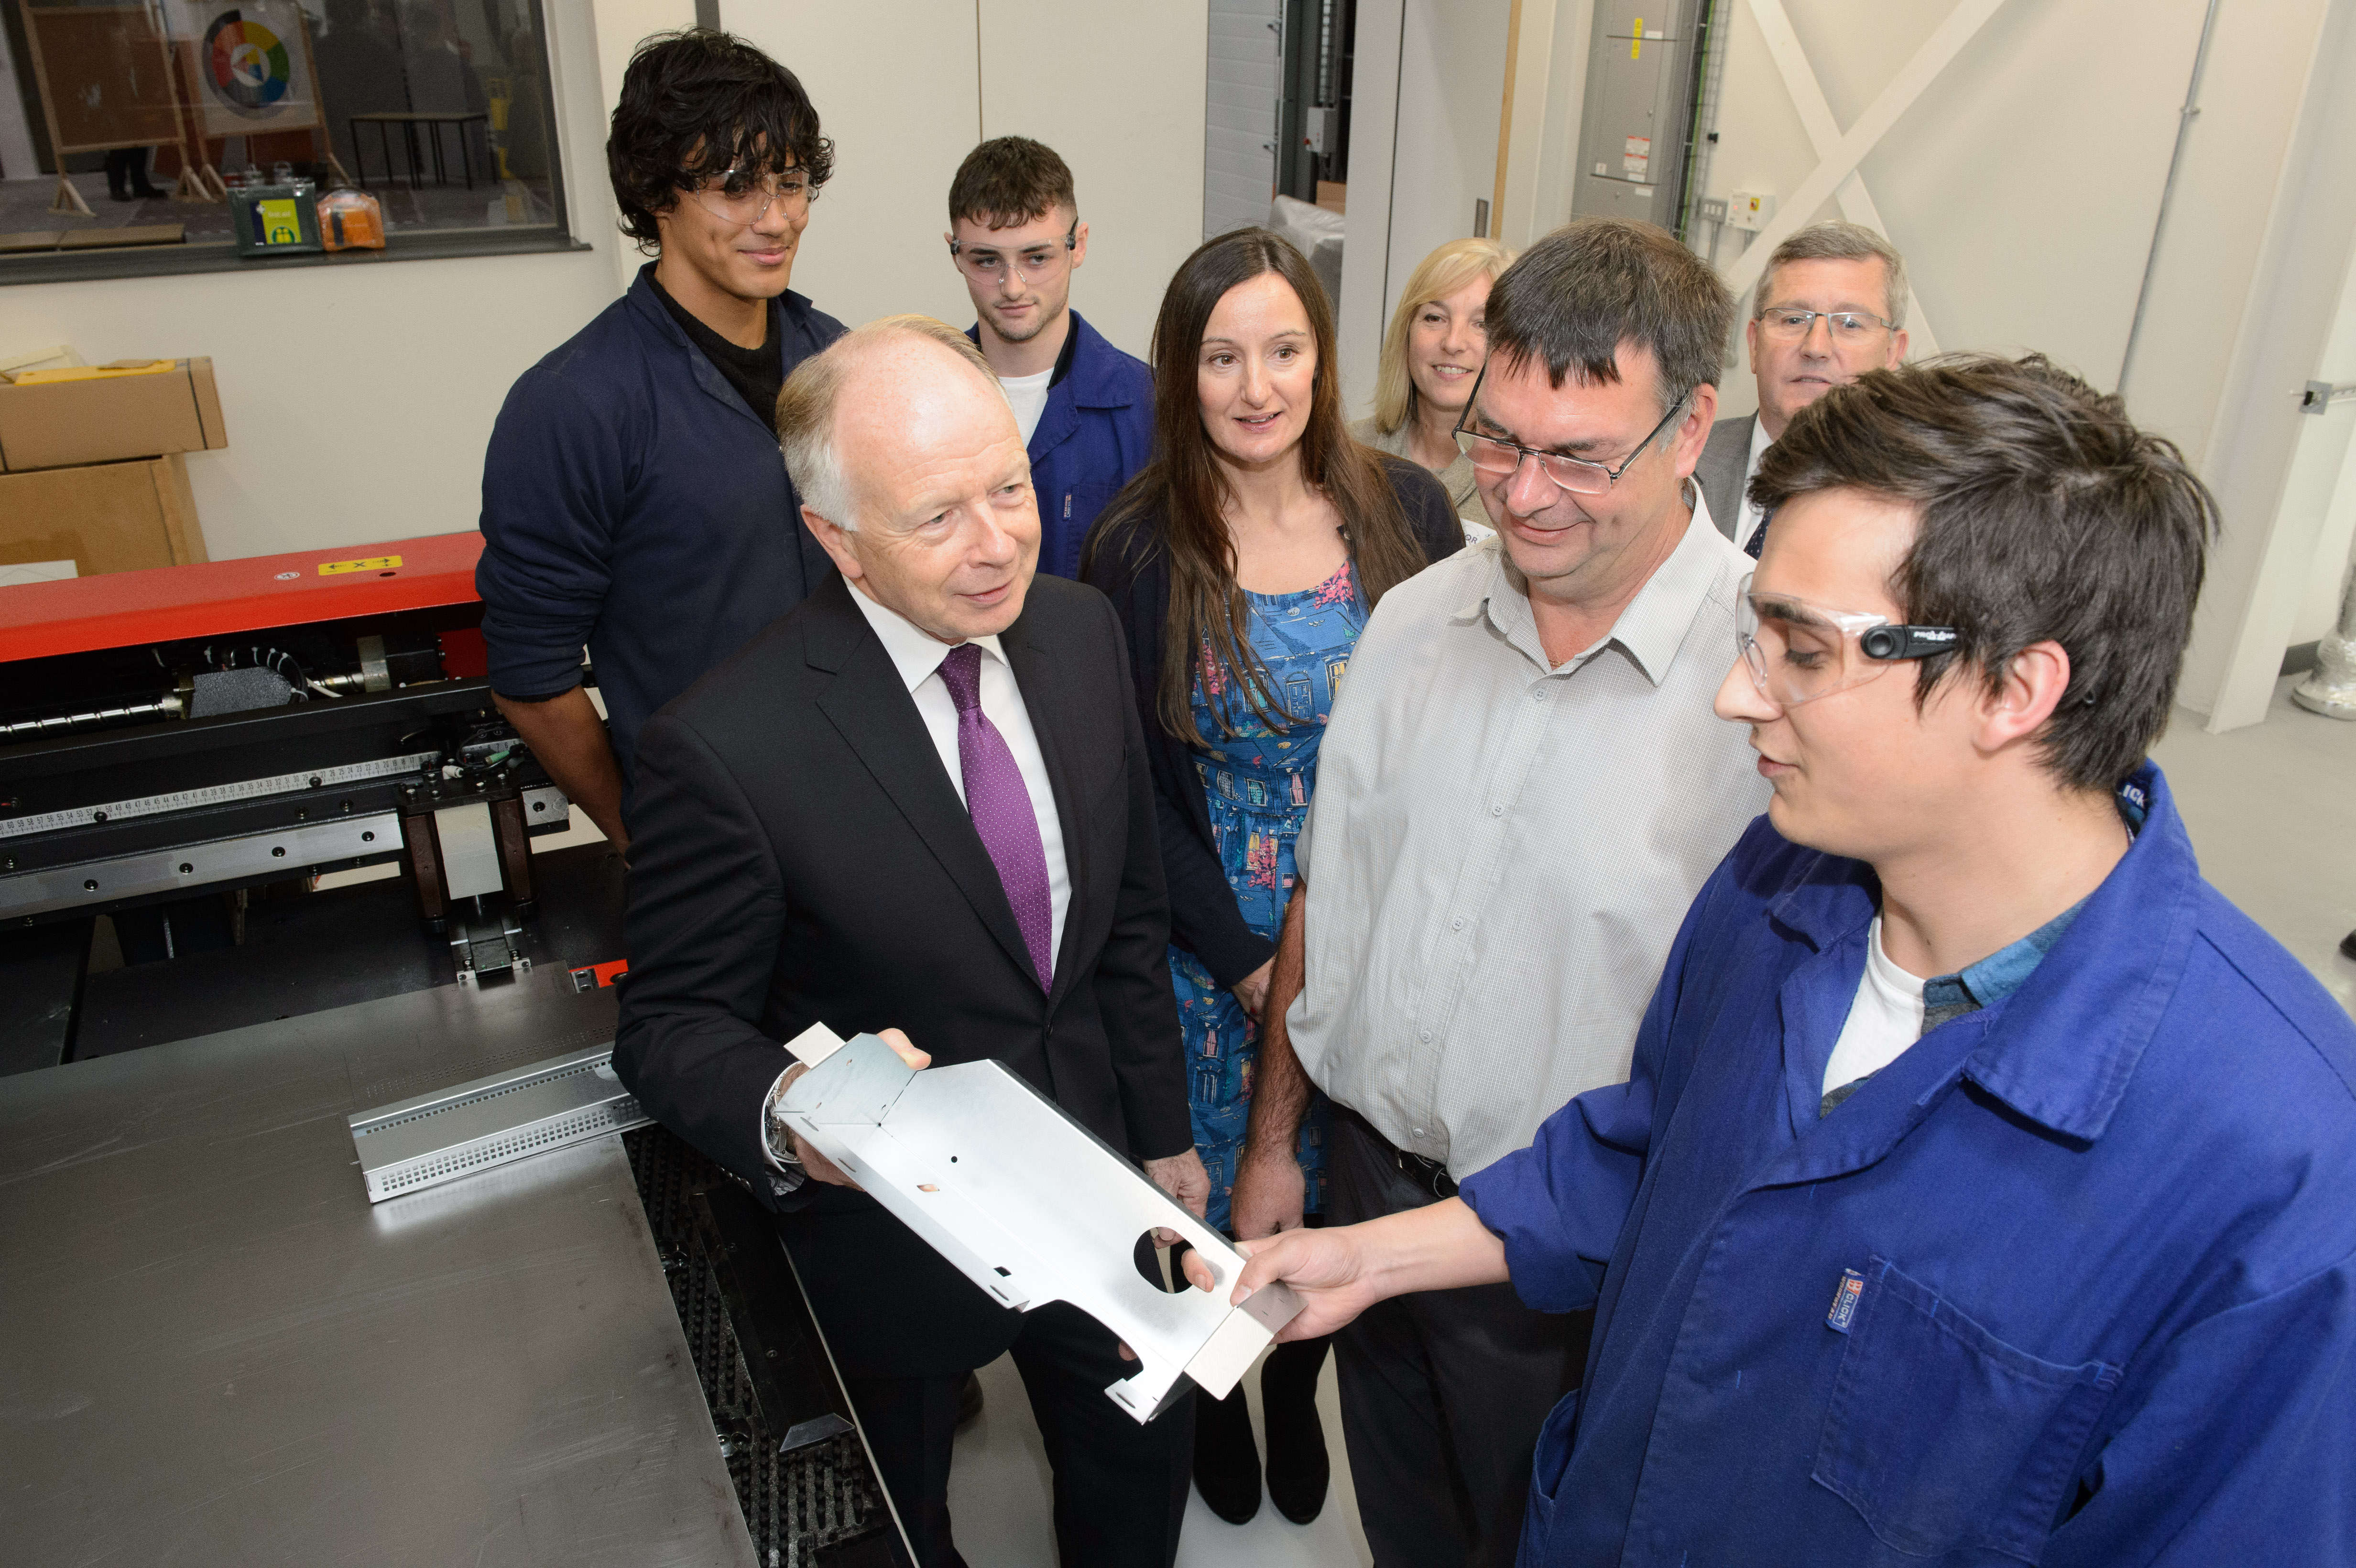 Manufacturing apprentices build skills for the future